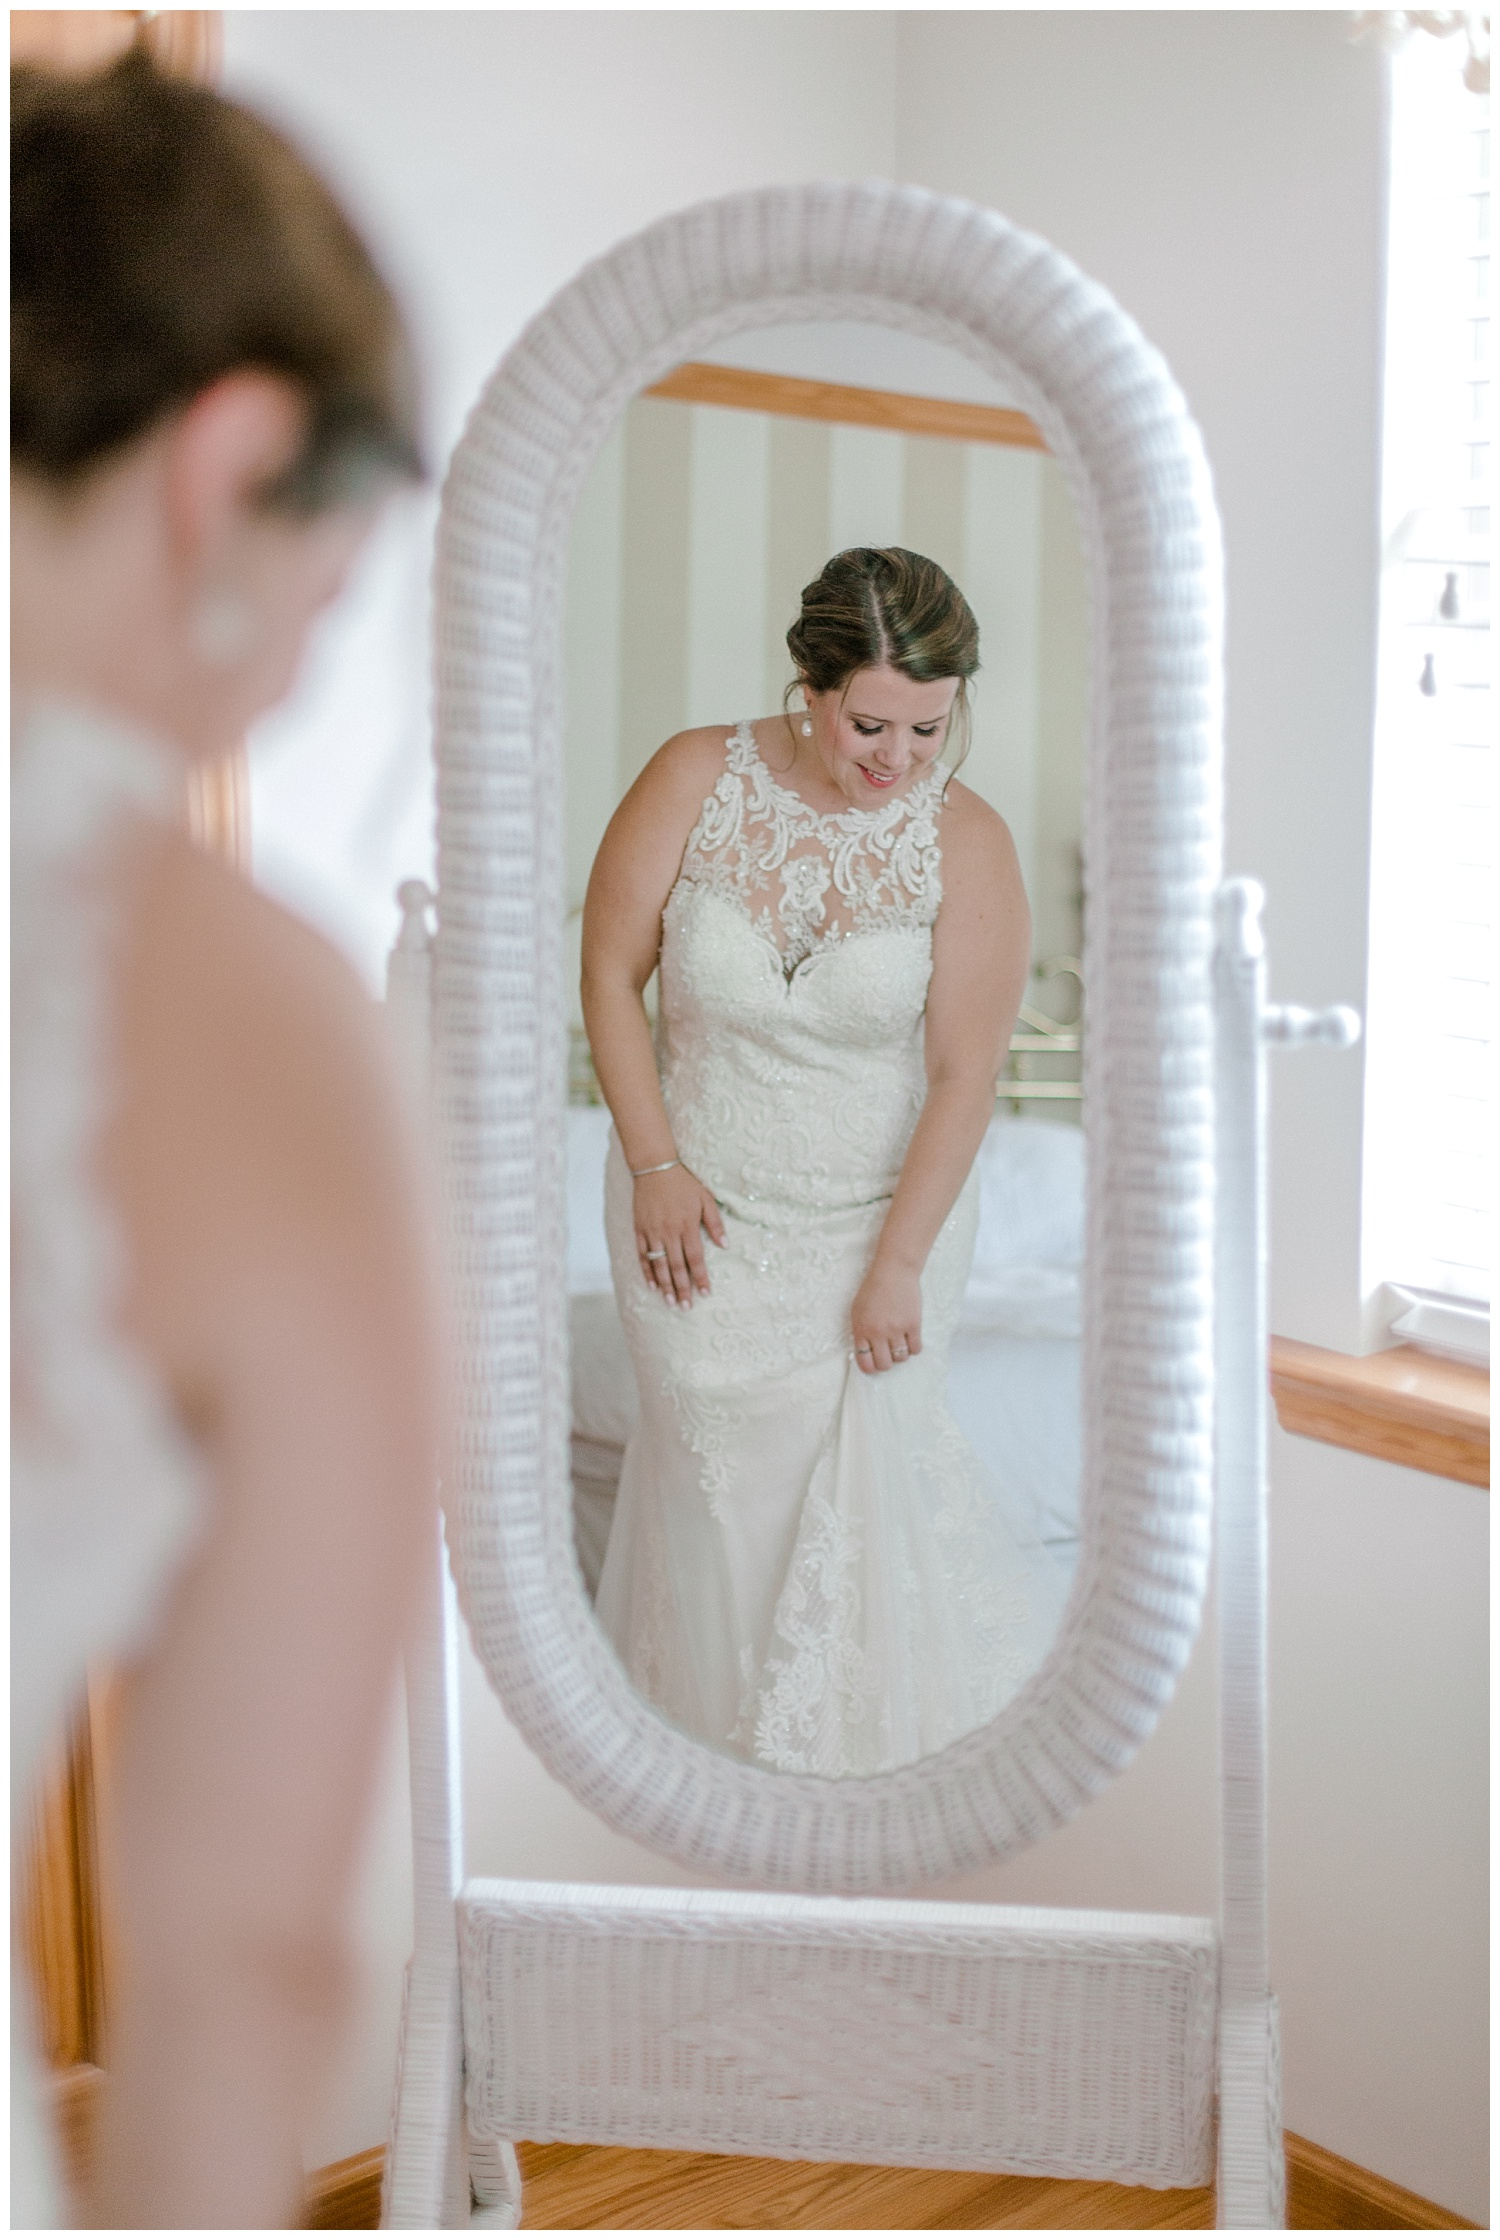 Navy and Blush pink inspired summertime whitewoods wedding in Northeastern Pennsylvania NEPA wapwallopen wedding venue by  PA based wedding and lifestyle photographer Lytle photography_0012.jpg